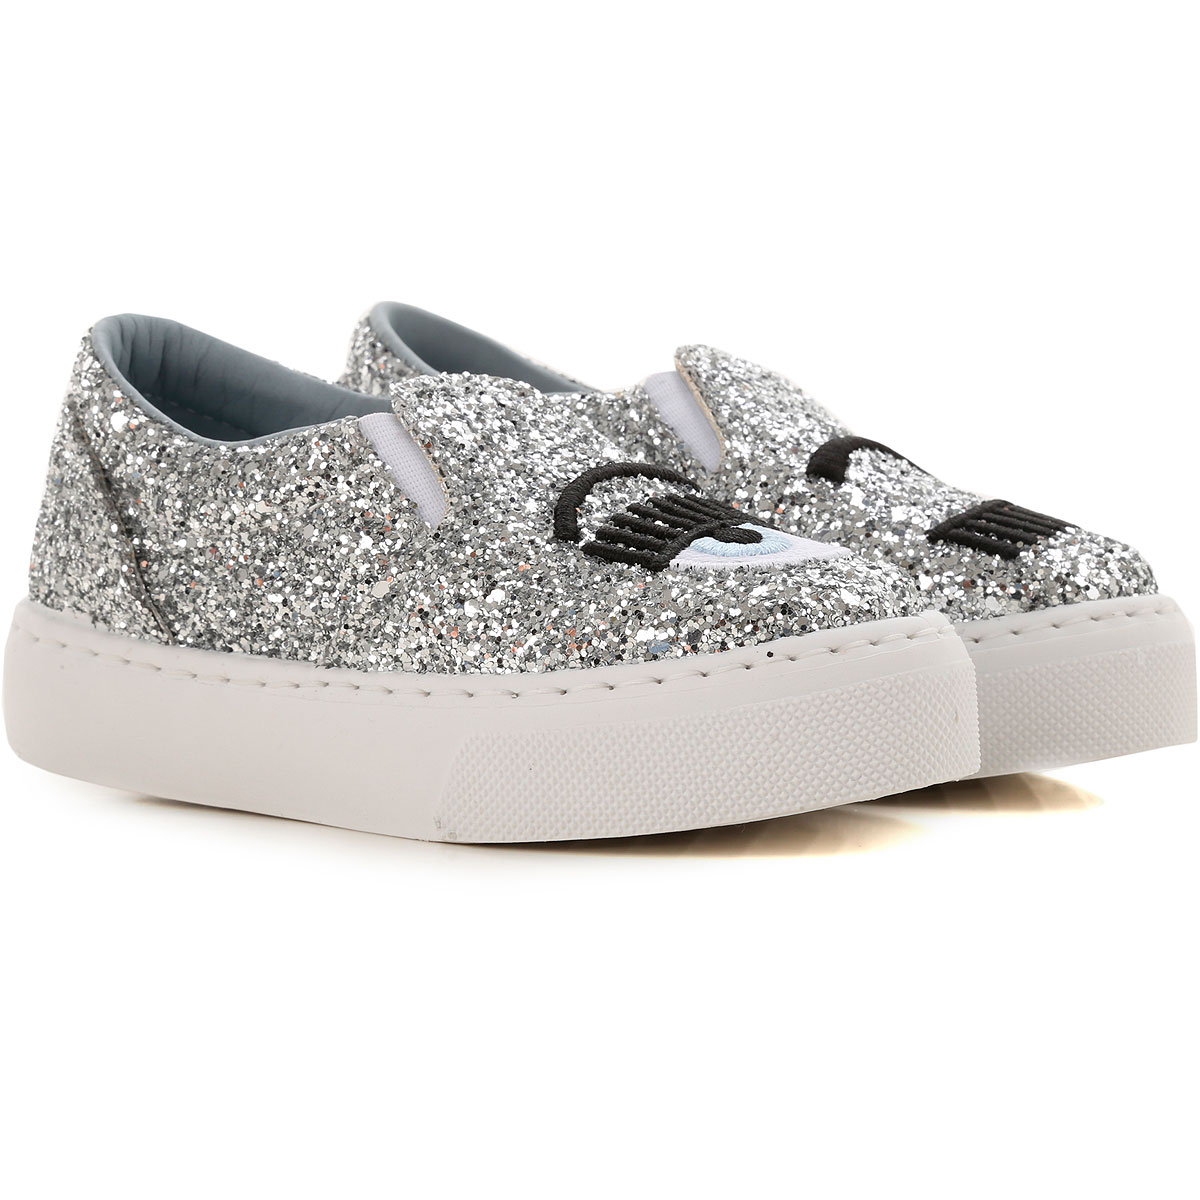 Image of Chiara Ferragni Kids Shoes for Girls, Silver, Leather, 2017, 28 29 30 31 32 33 34 35 36